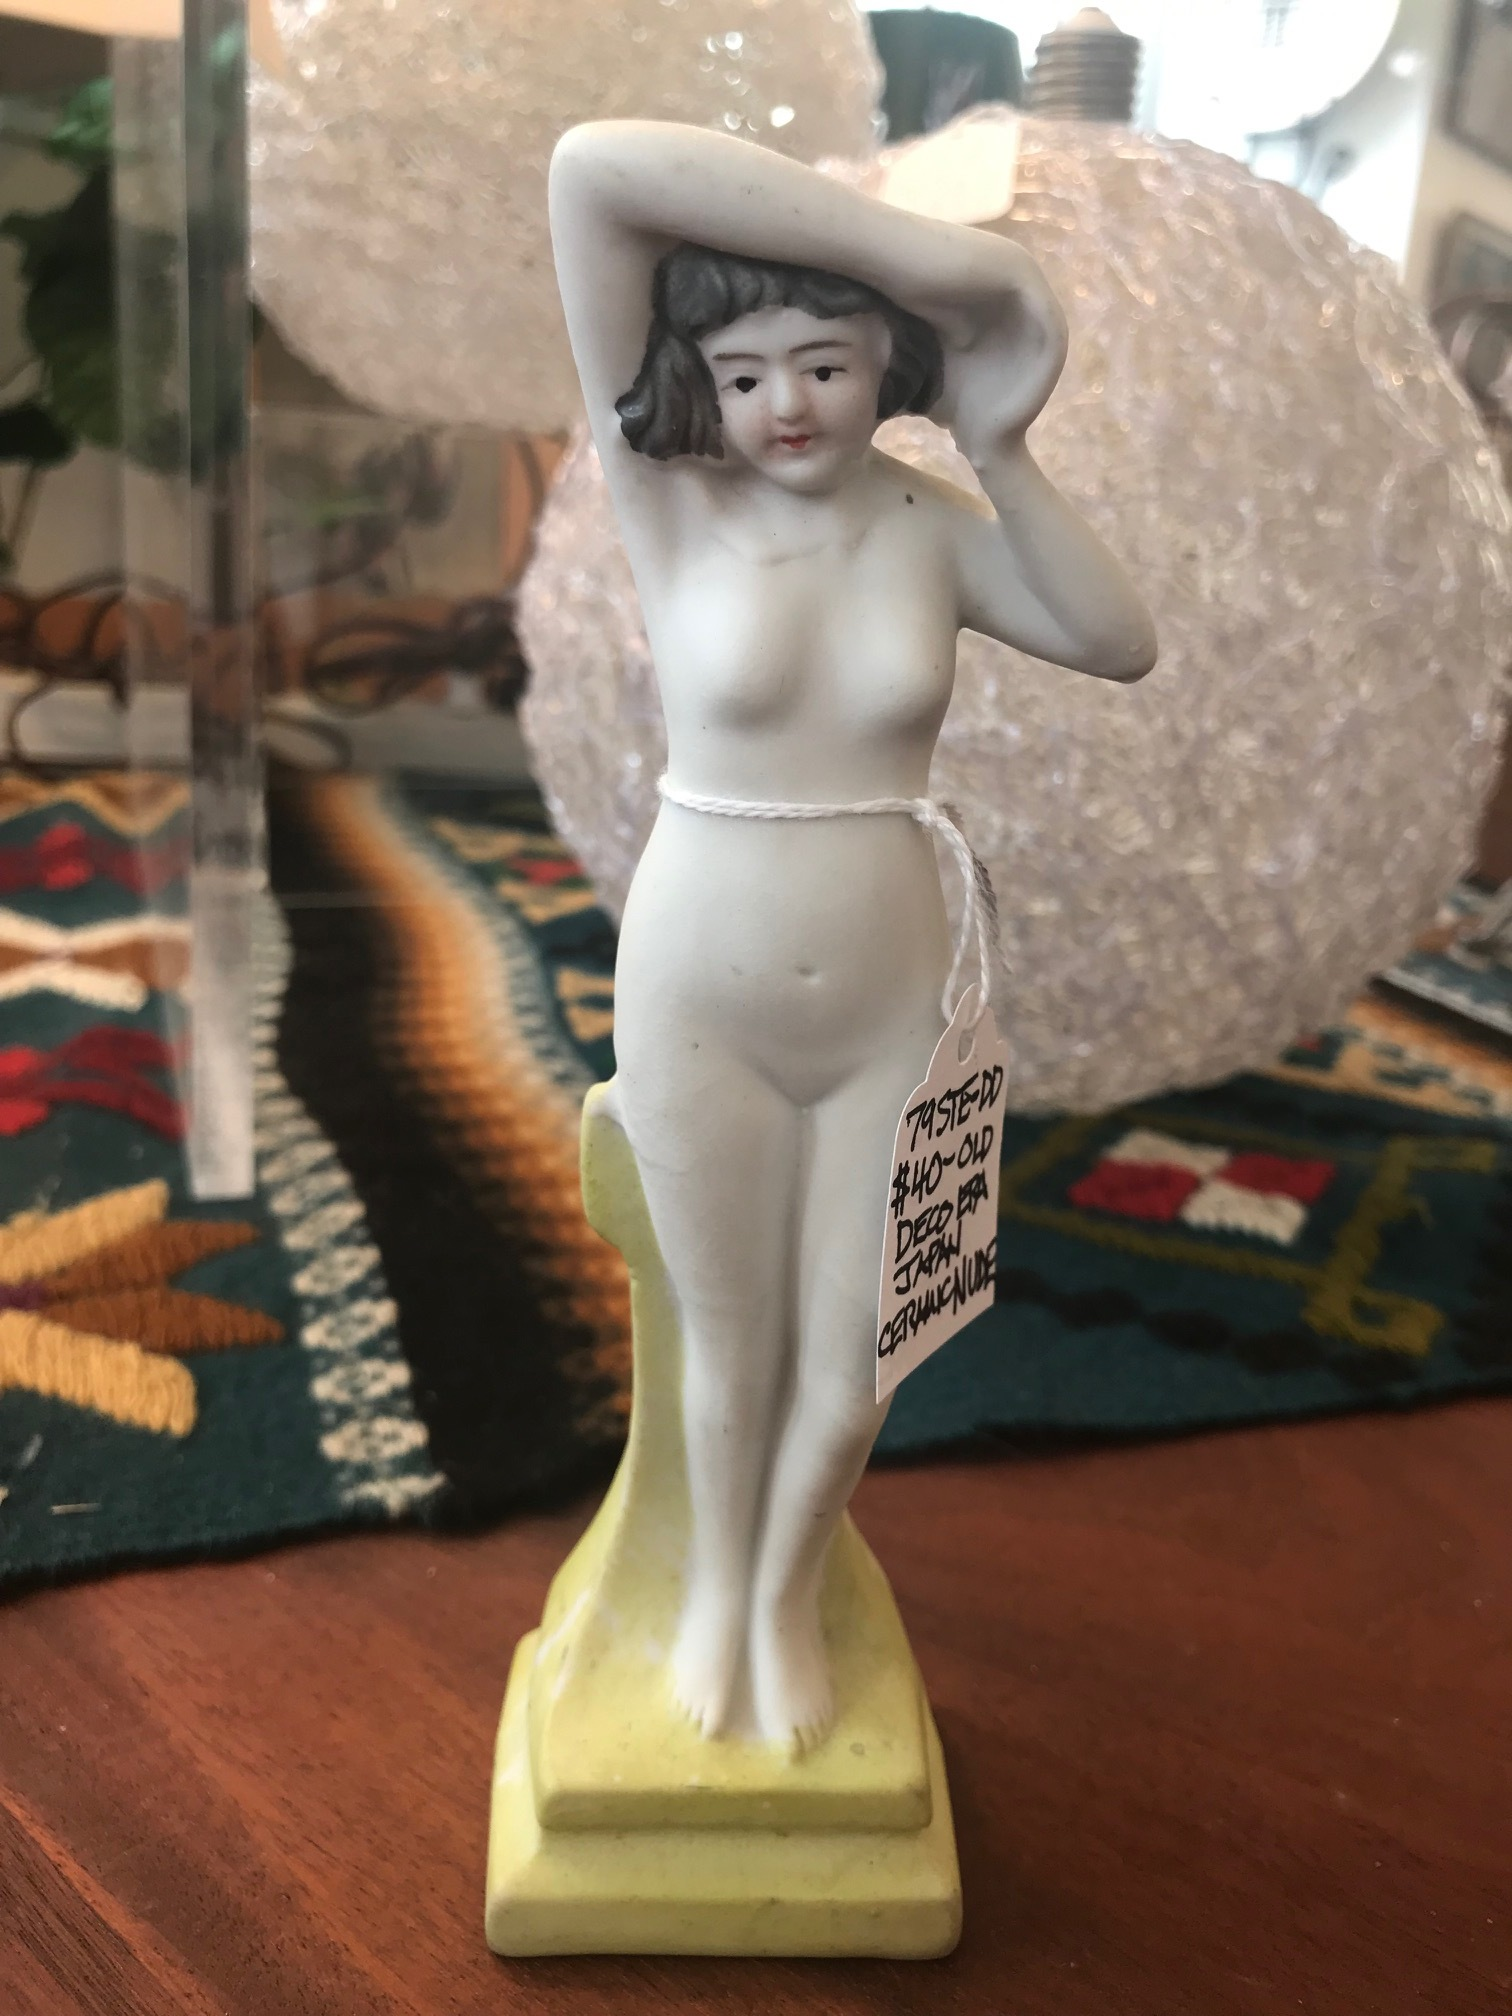 02 JAPANESE CERAMIC FIGURE A.jpg